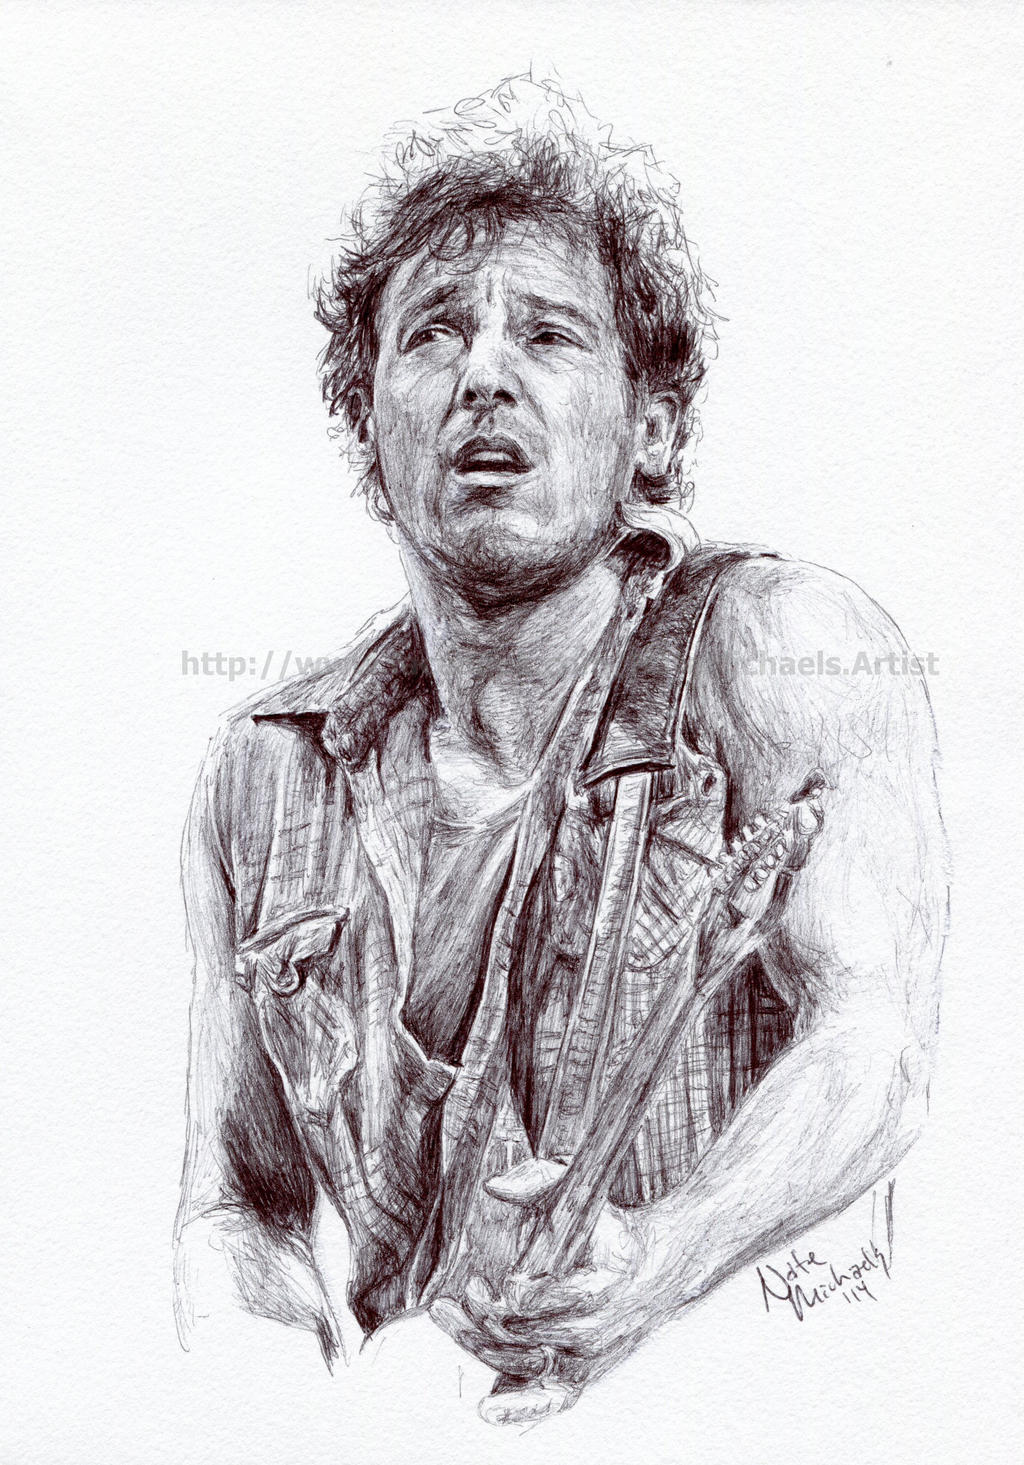 Bruce Springsteen Pen And Ink Portrait By Natemichaels